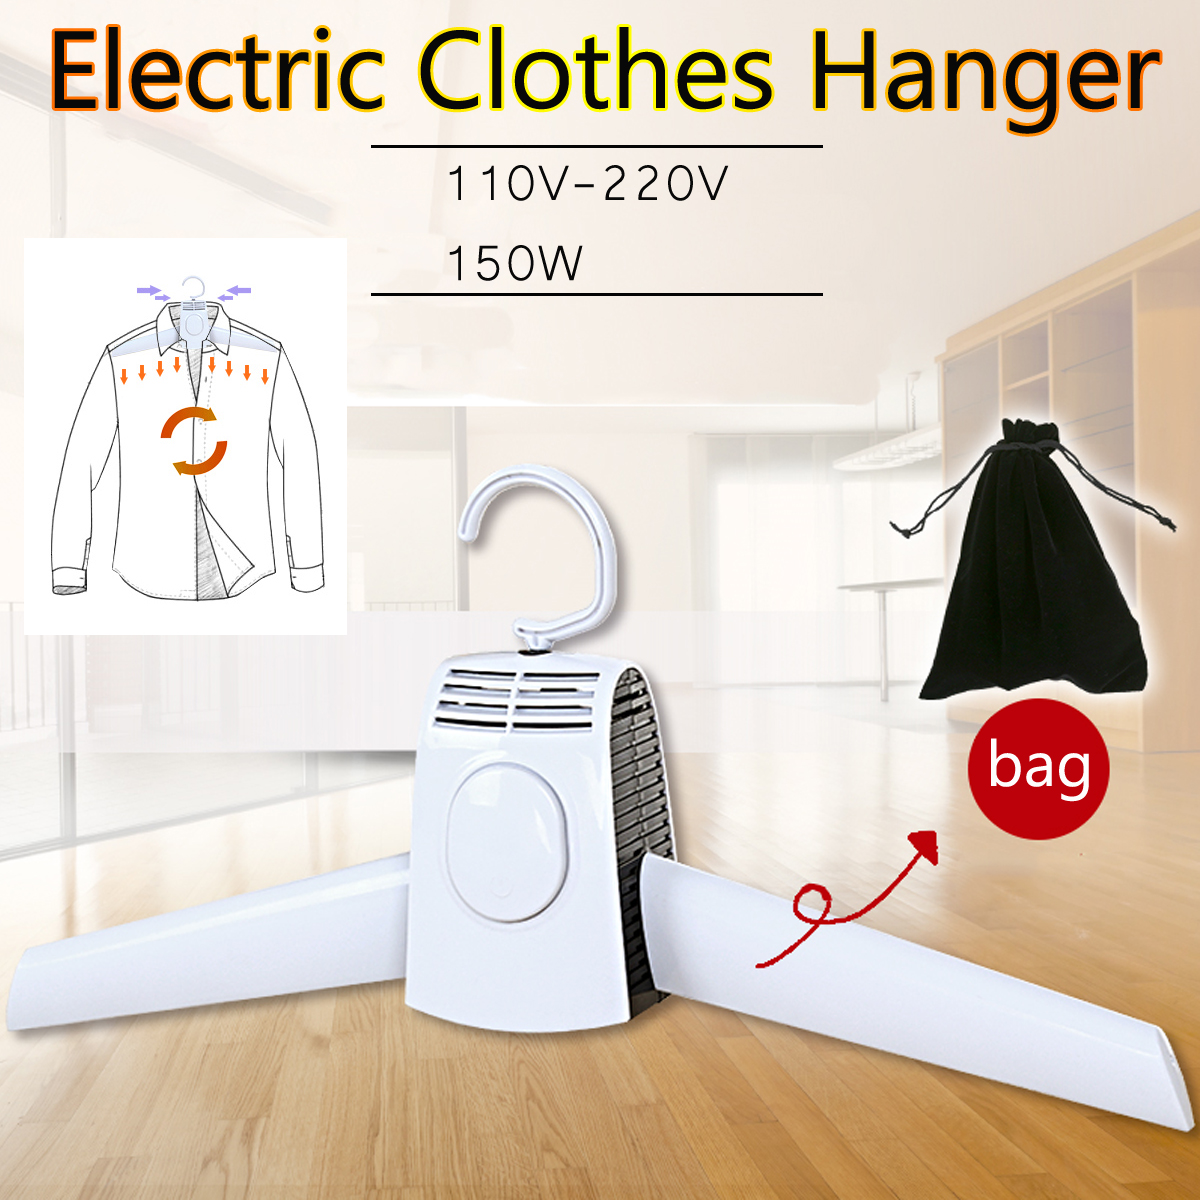 Portable Clothes Hangers Electric Laundry Dryer Smart Shoes Dryer Rack Coat Hanger For Winter Home Travel Rod Rack Hangers